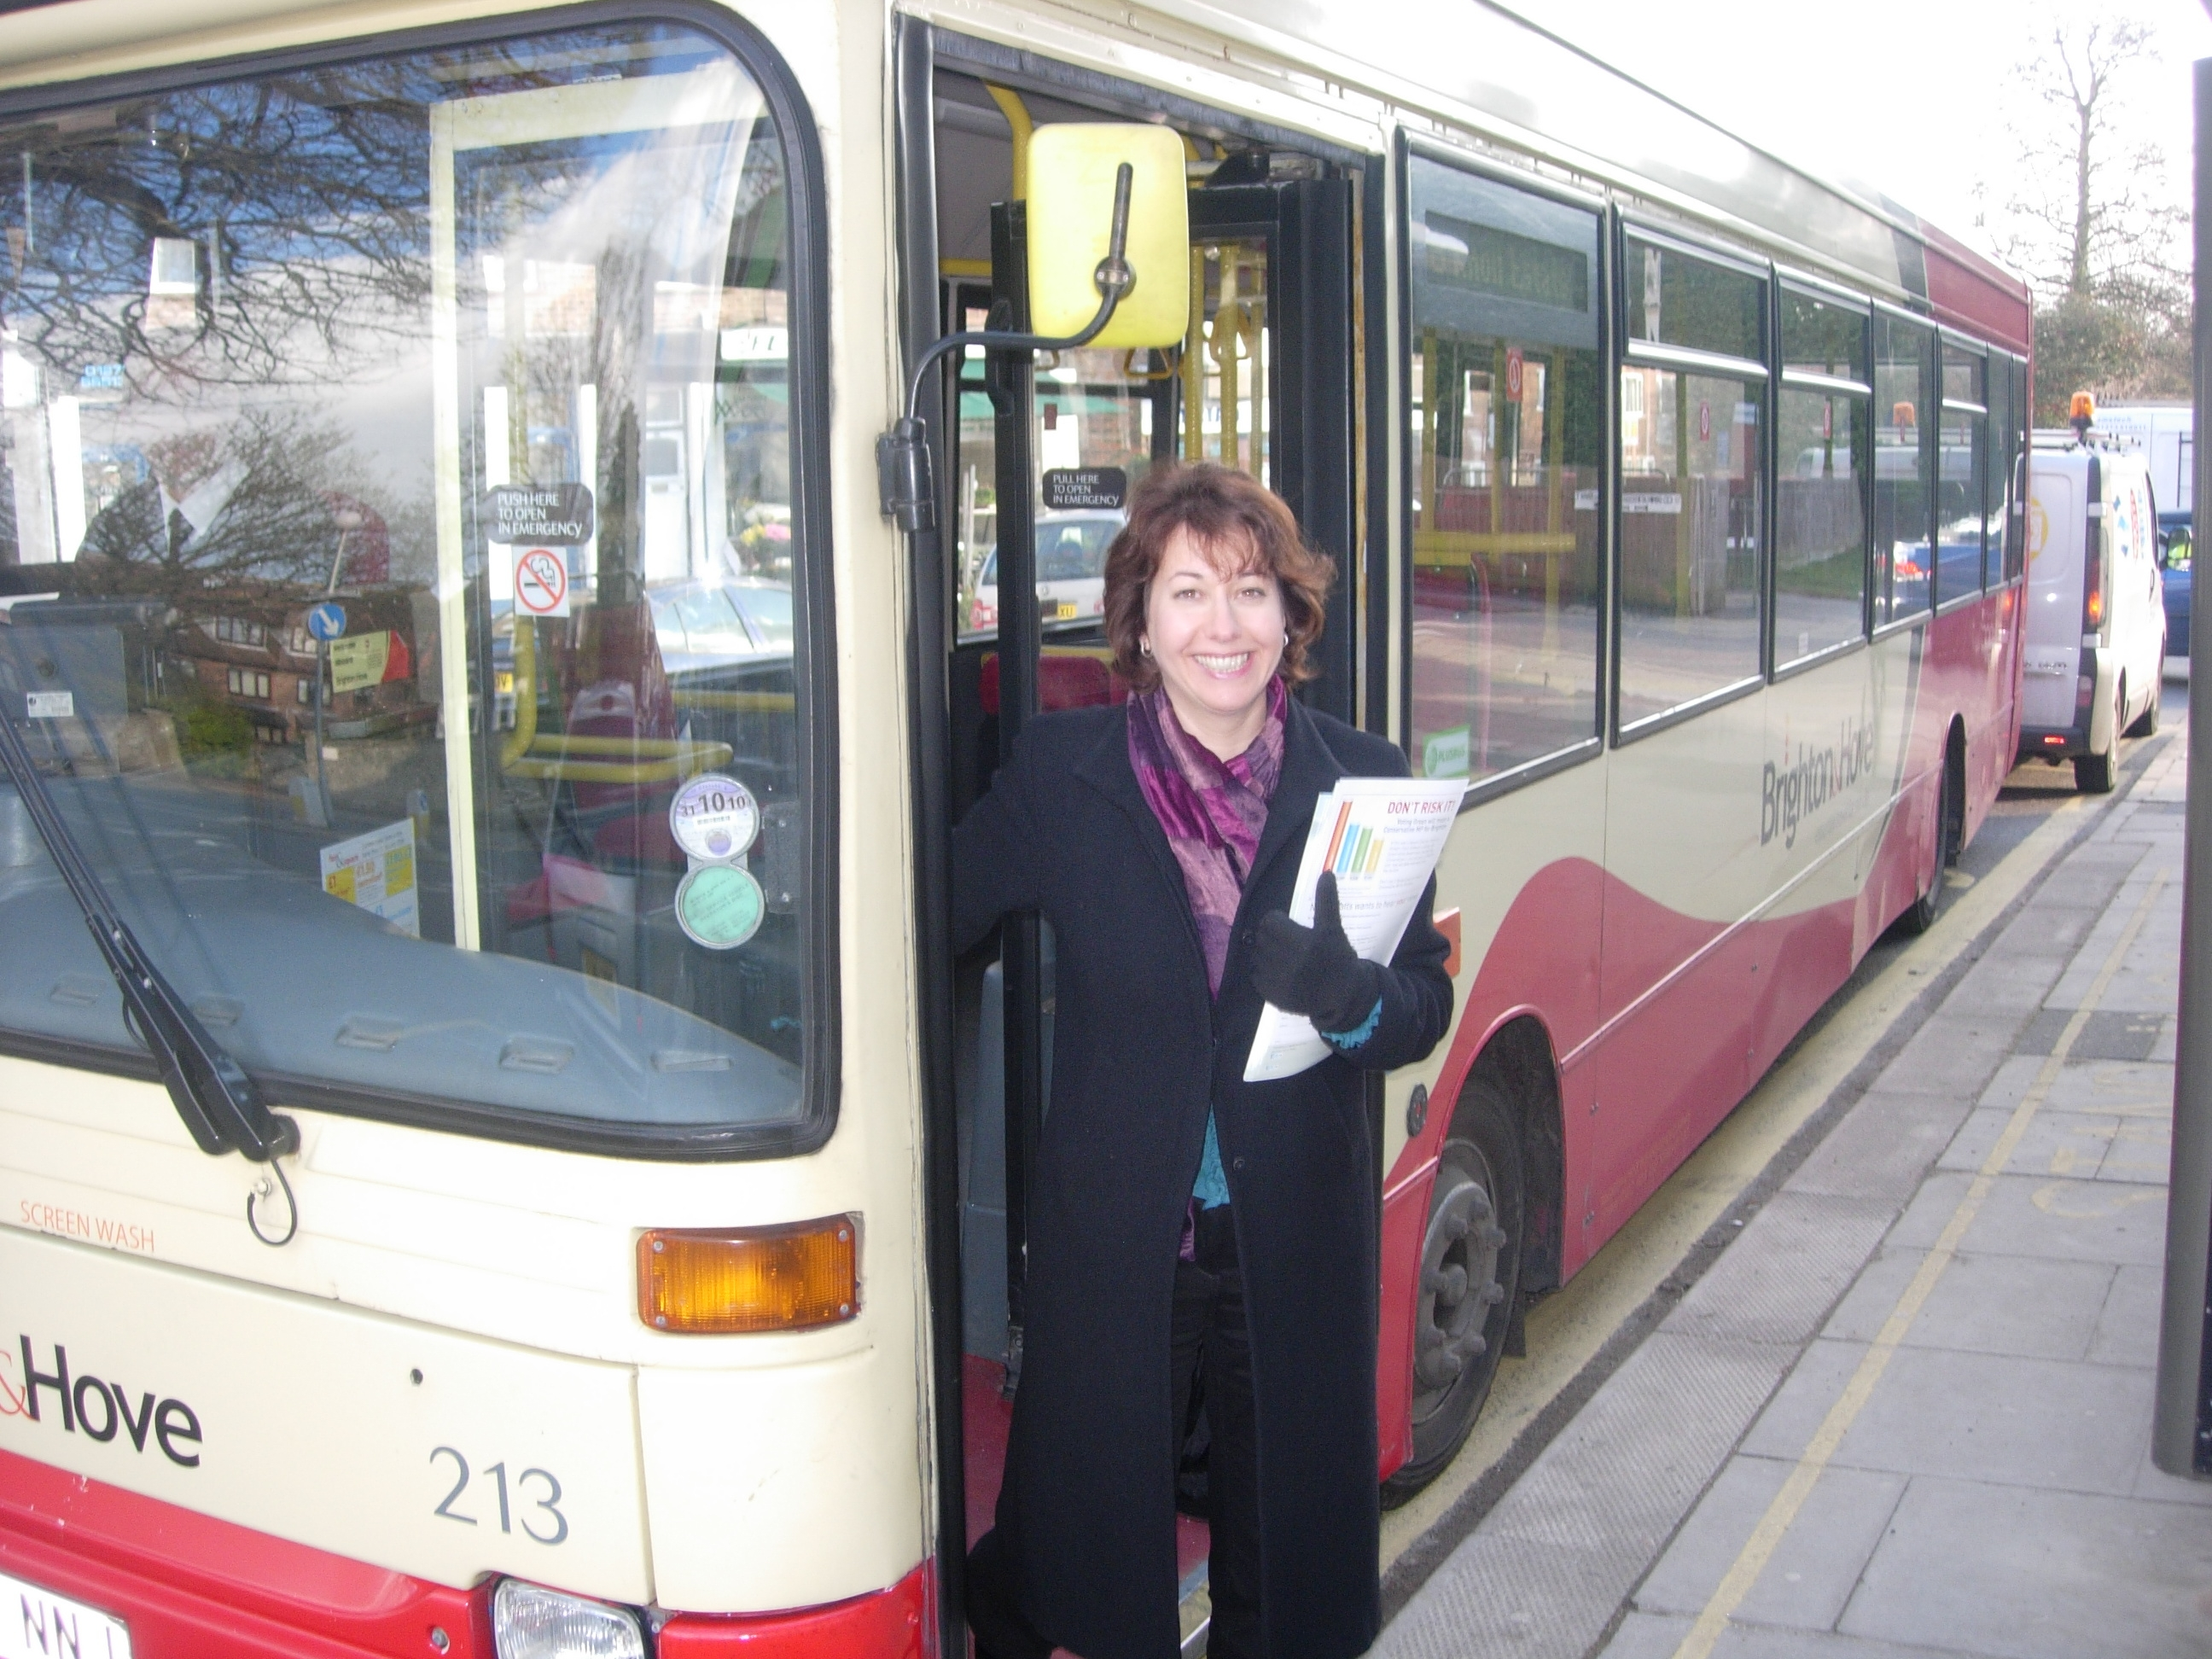 Nancy_Platts_On_The_Buses.JPG